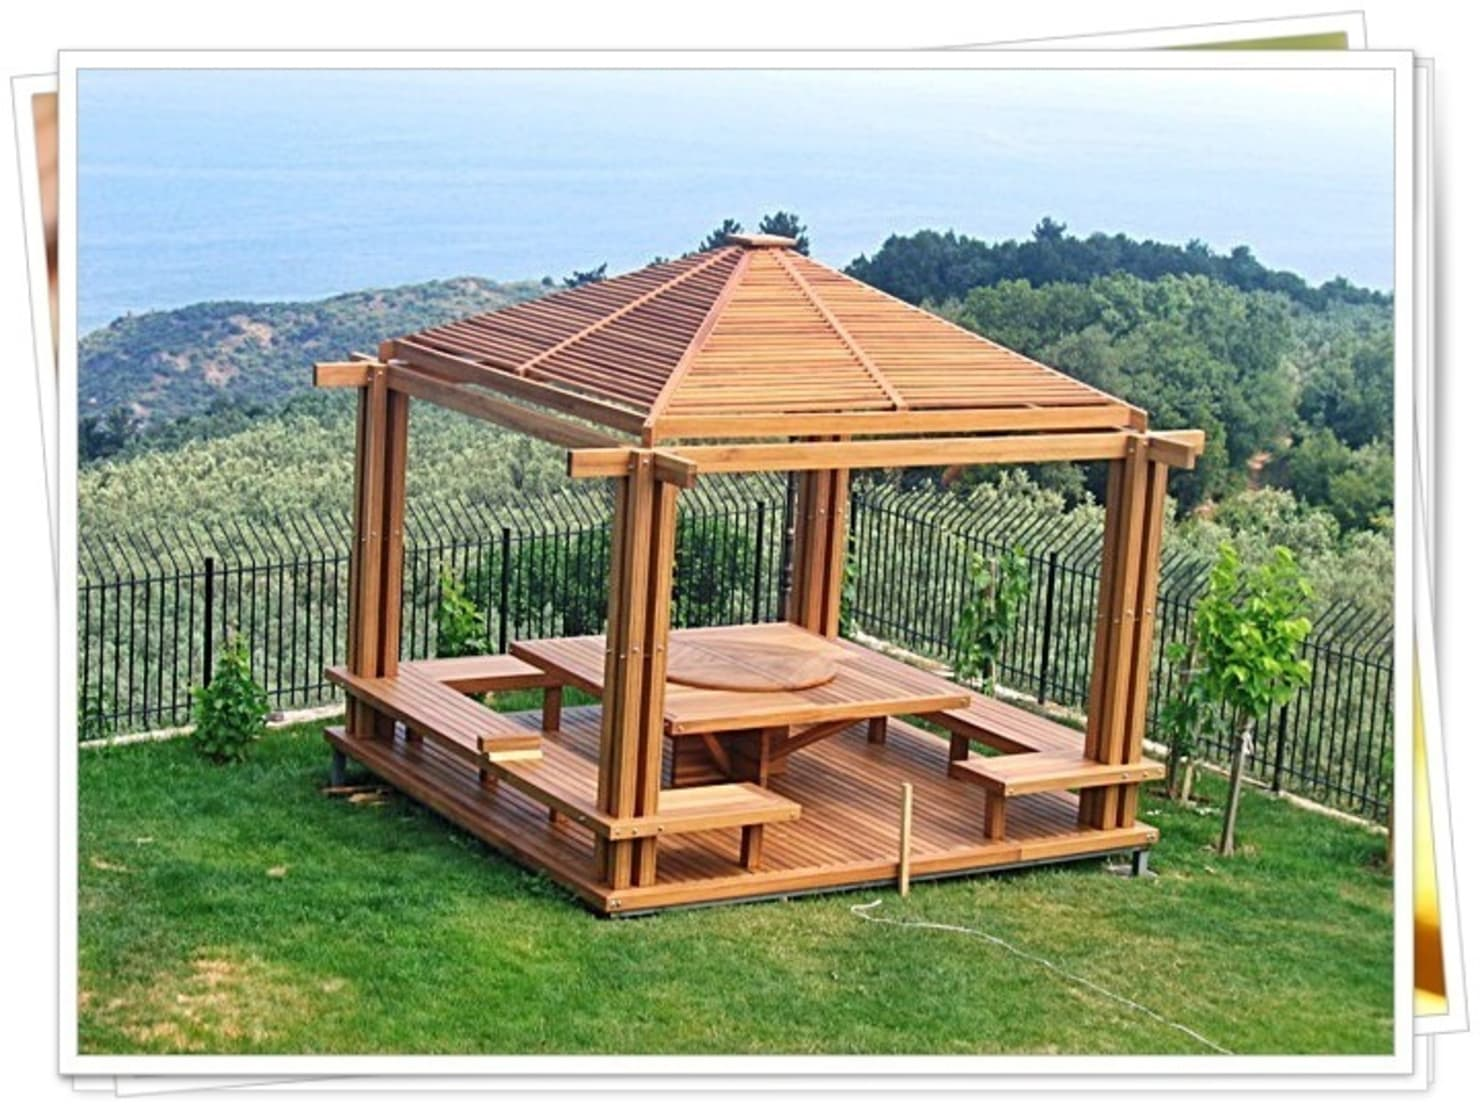 DIY: build a garden pergola in 5 steps